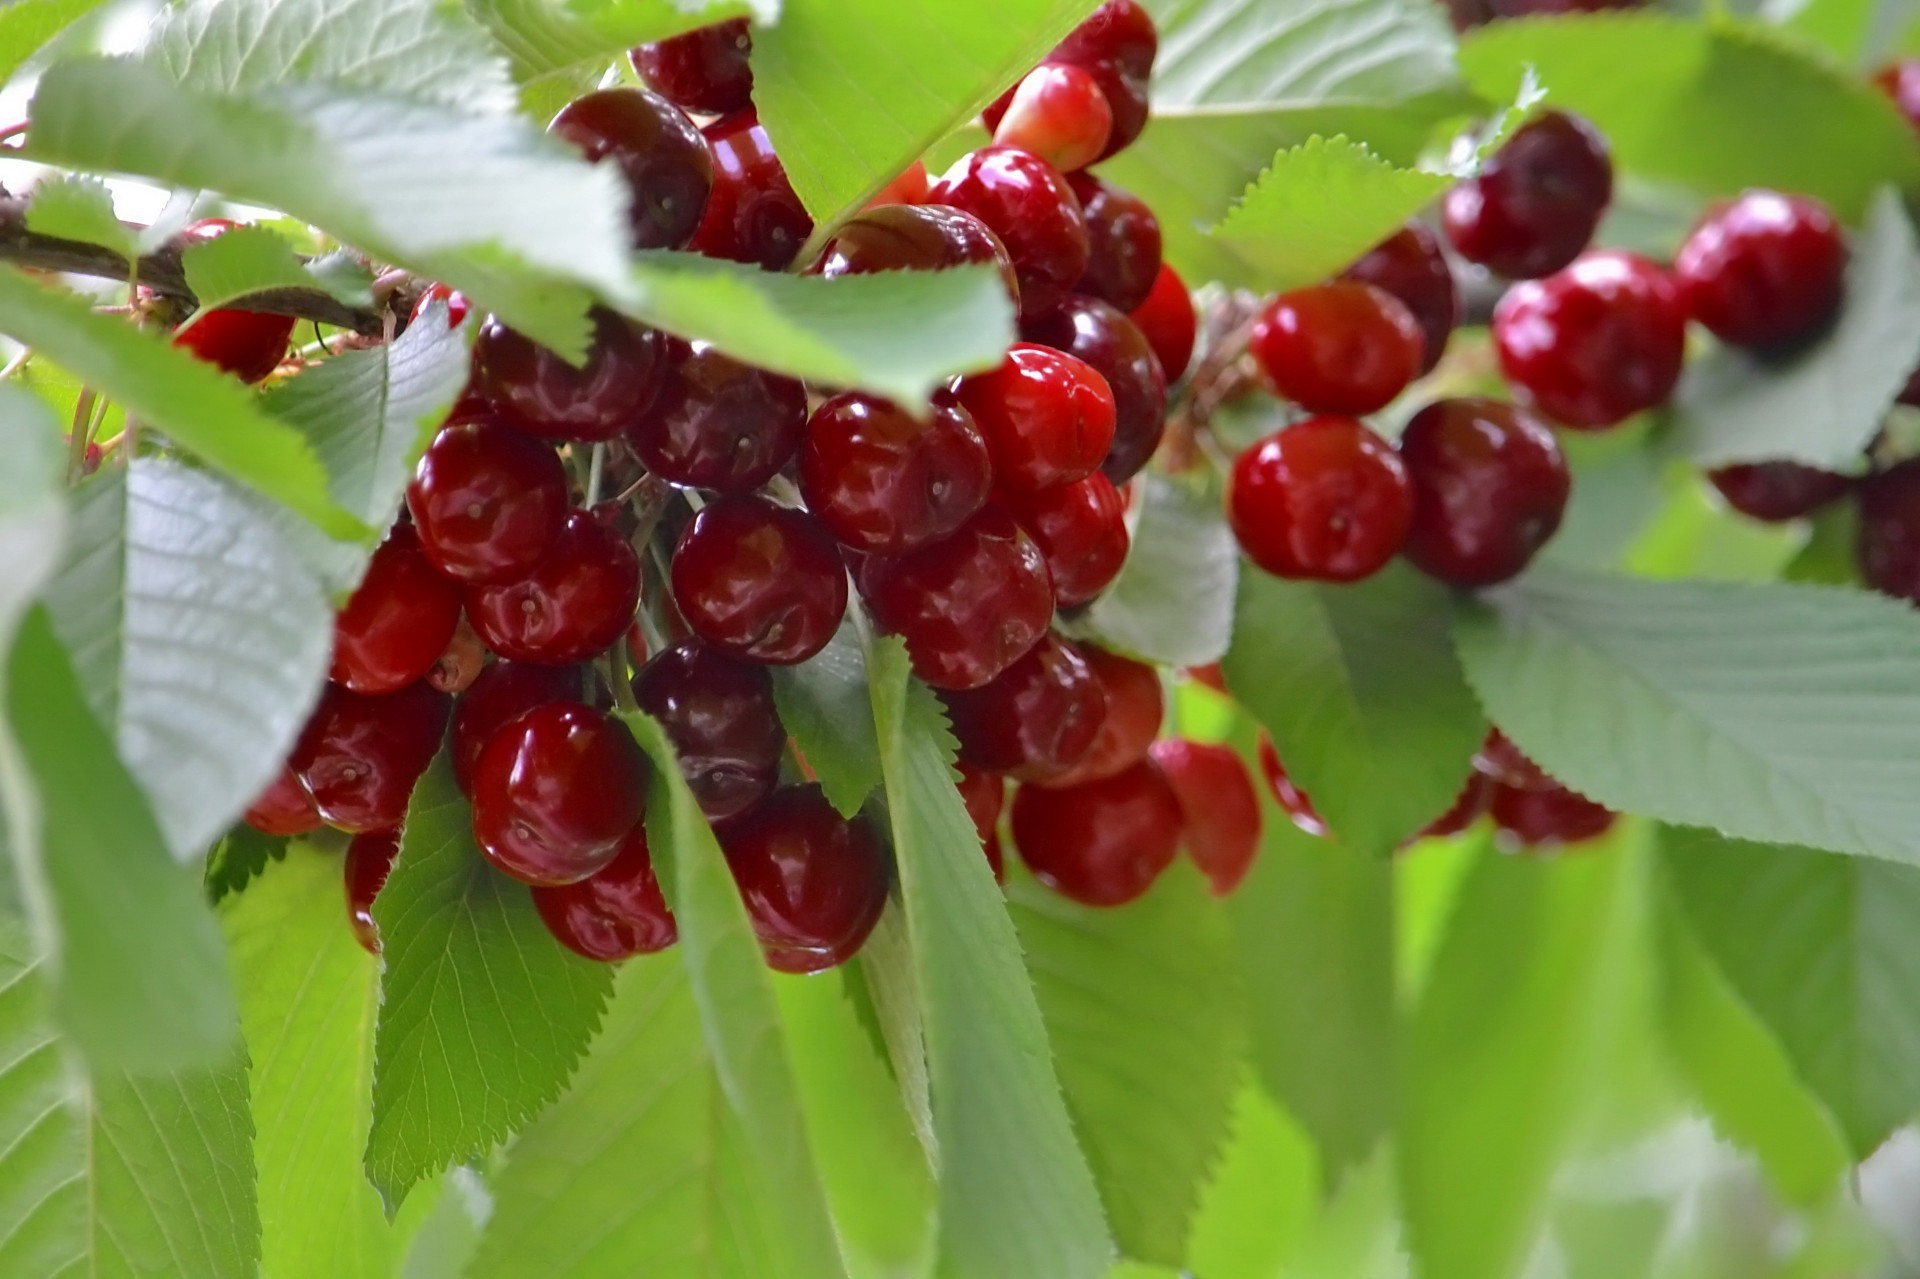 berries leaf berry fruit nature food healthy summer confection health close-up delicious freshness juicy garden pasture sweet cherry tasty branch